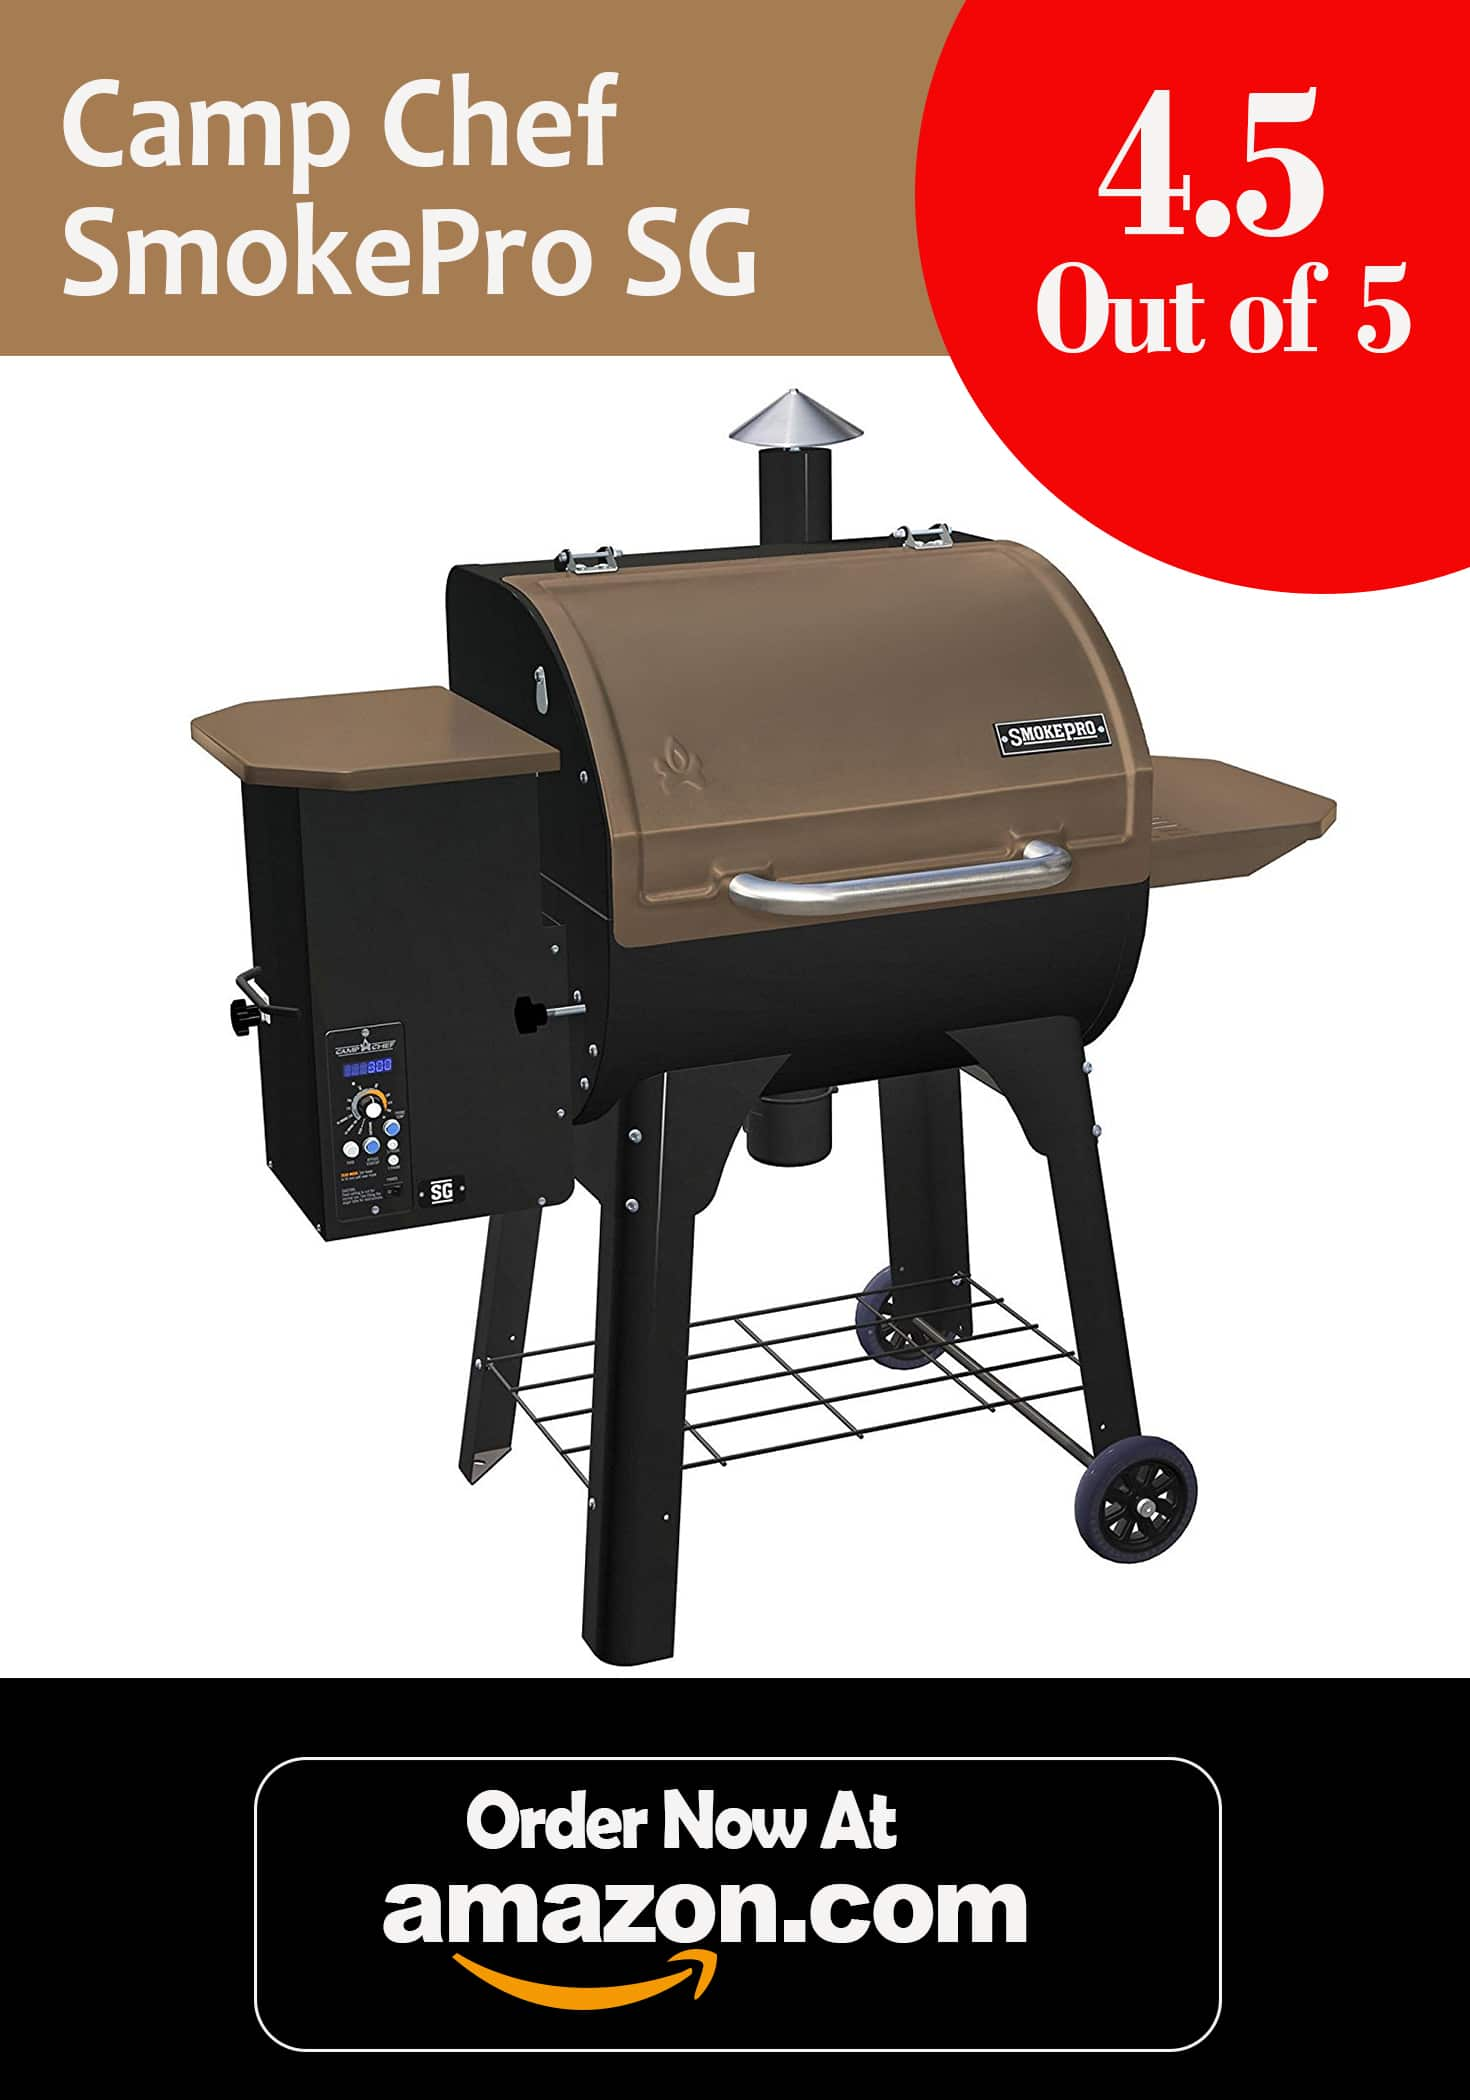 Camp Chef SmokePro SG Wood Pellet